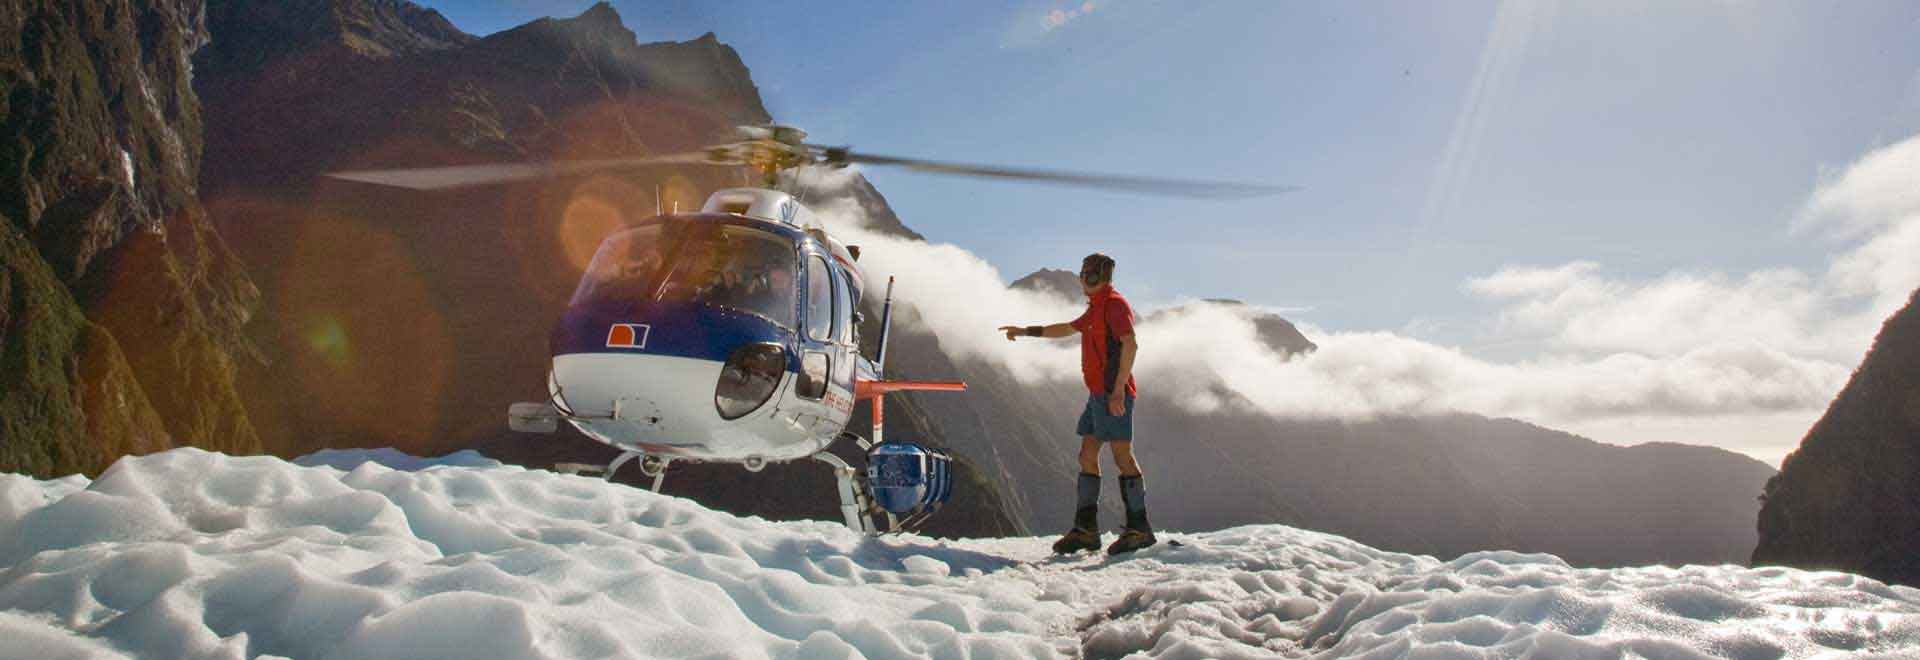 Snow Landing Heli Hike Franz Josef 3 Hours Helicopter Line